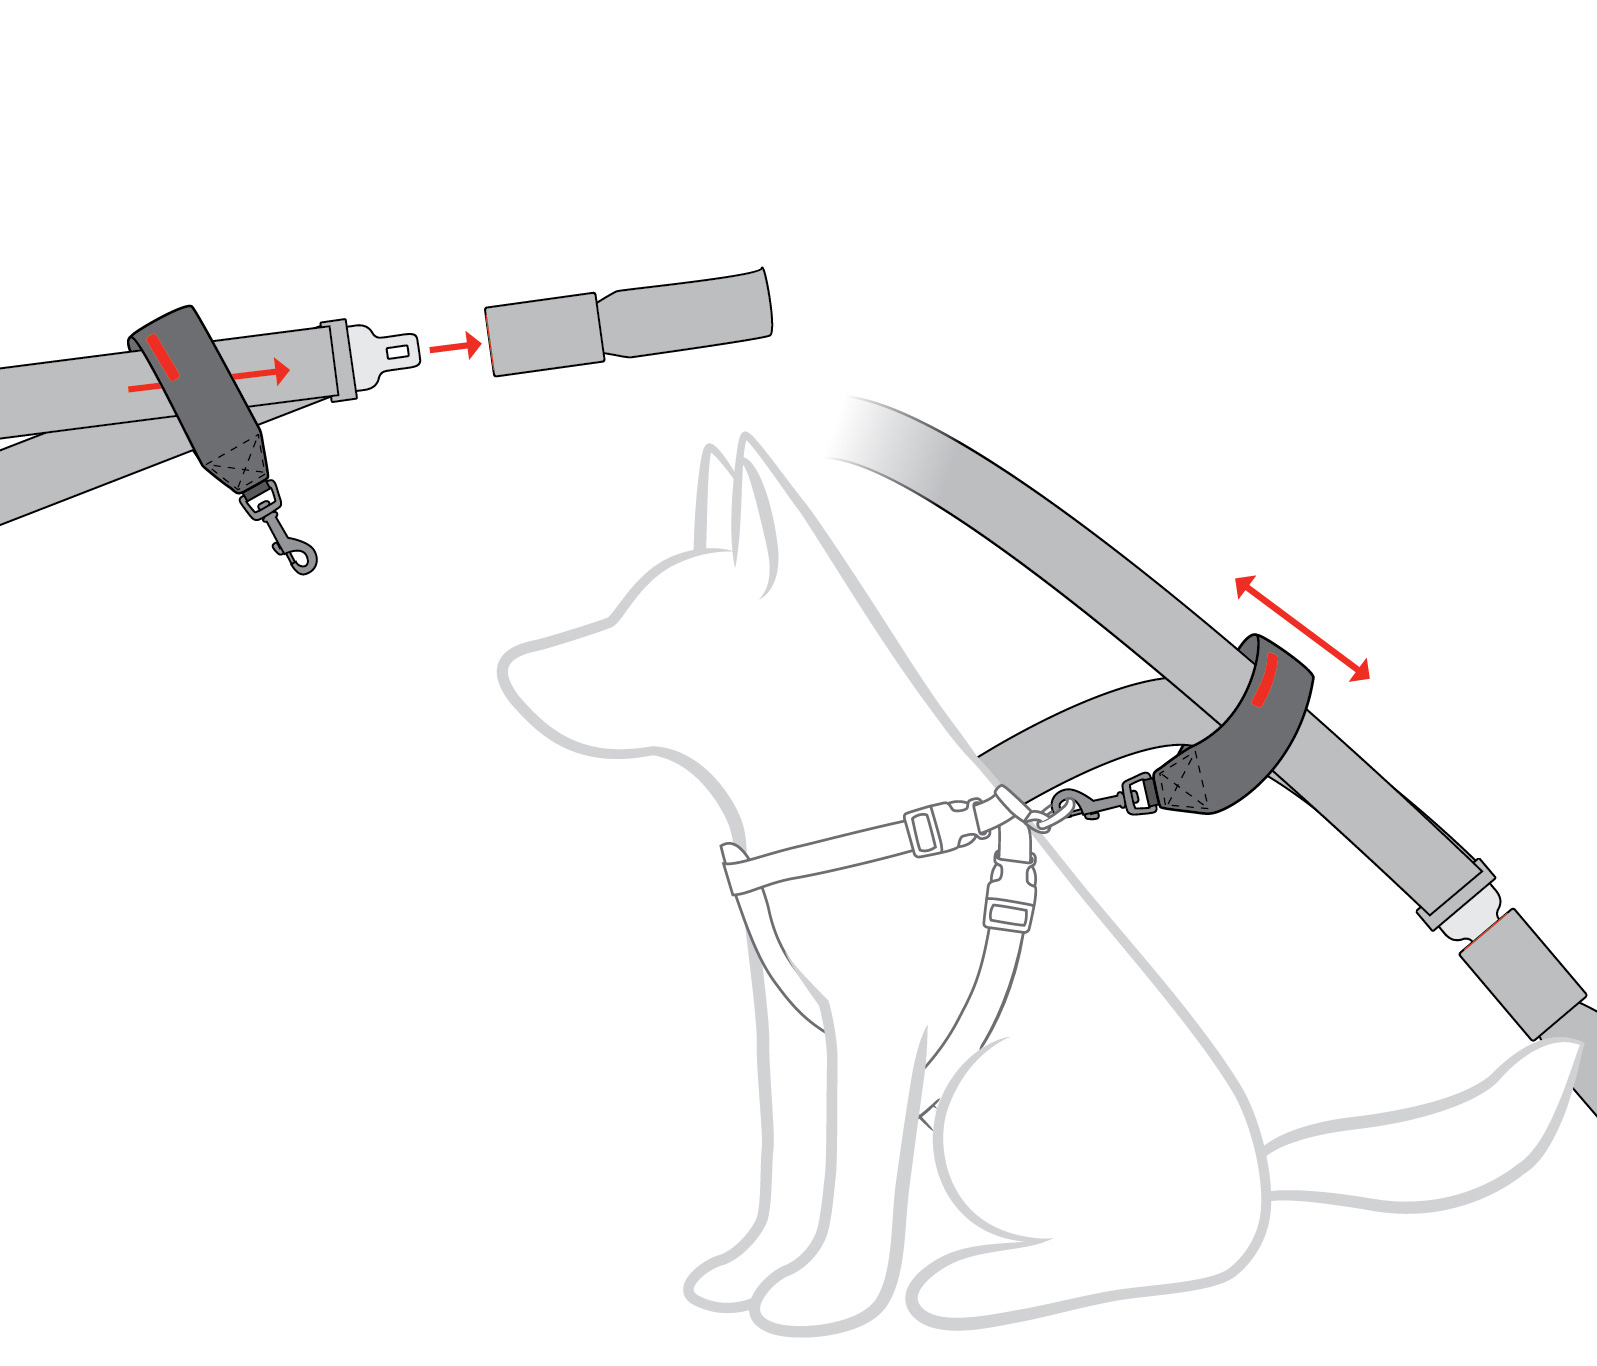 car-restraint-diagram.jpg